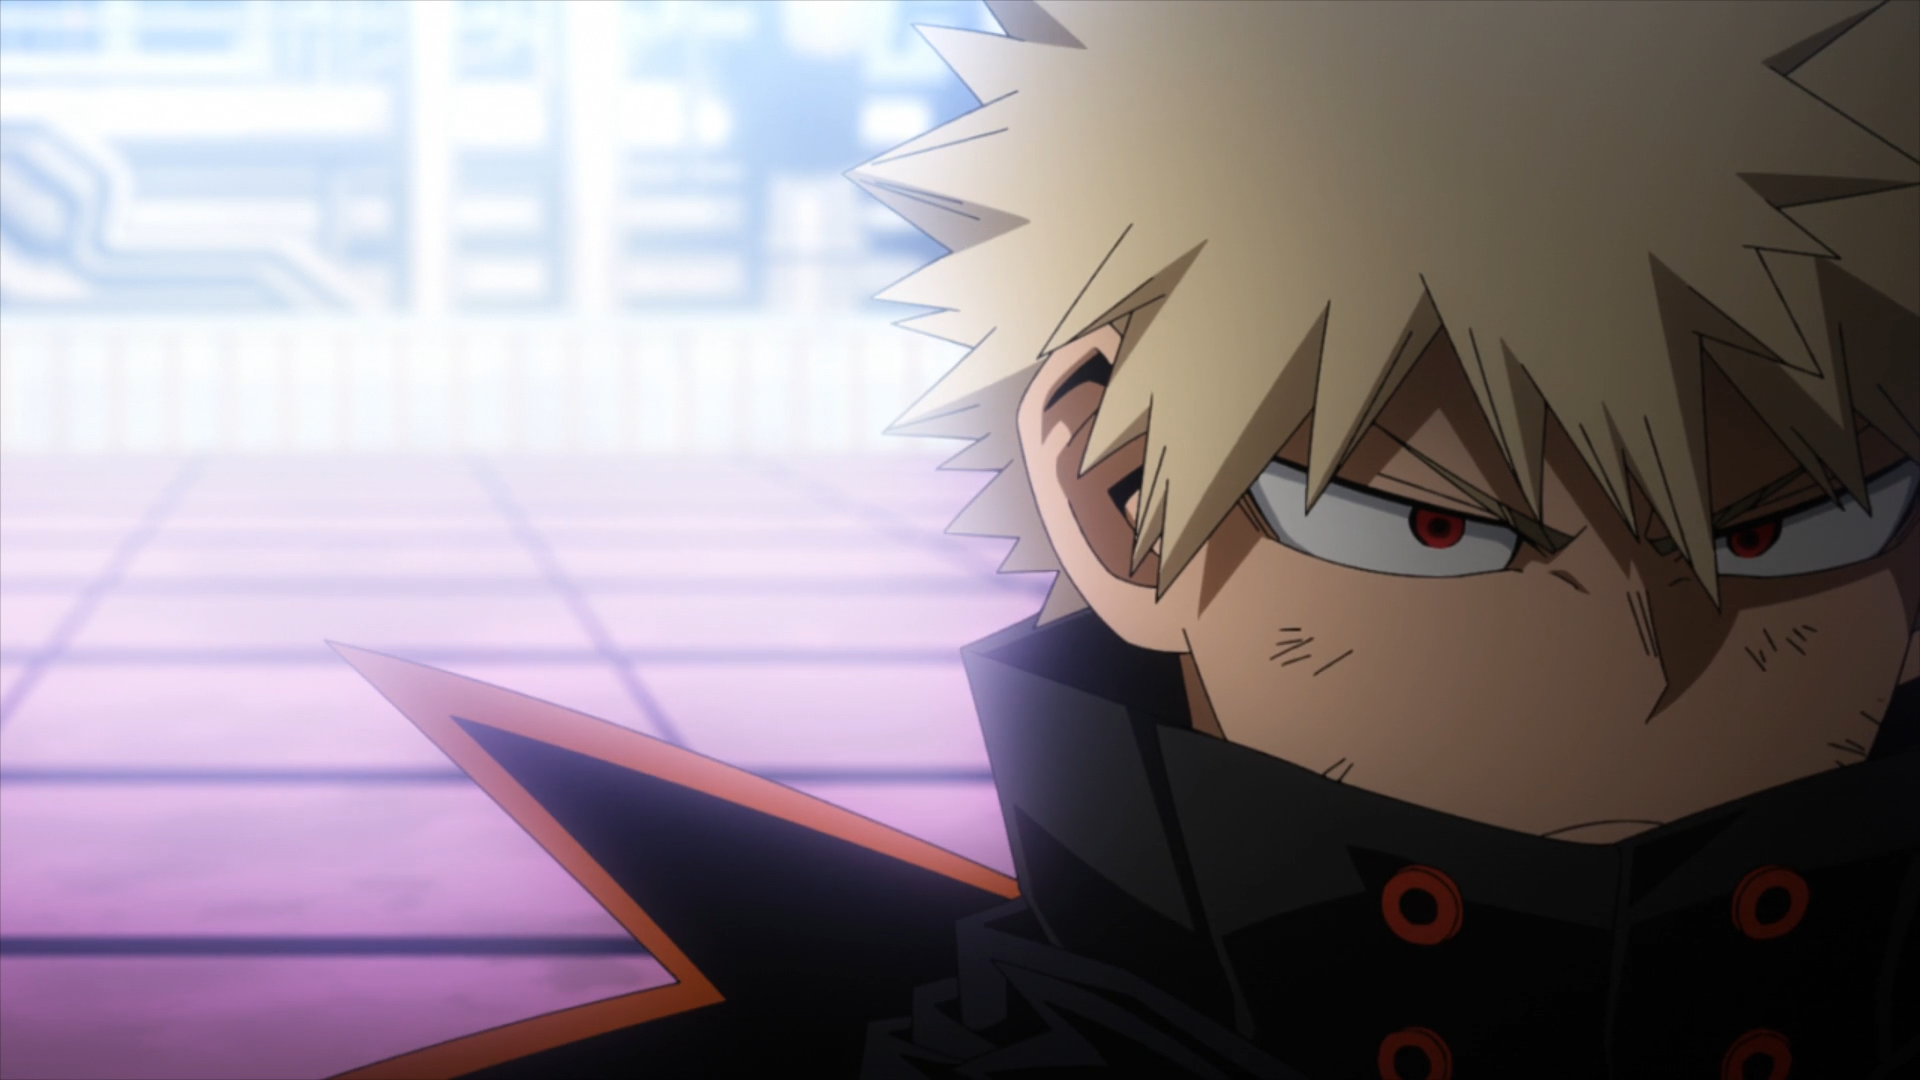 Bakugo walking away after leading his team to a flawless victory.